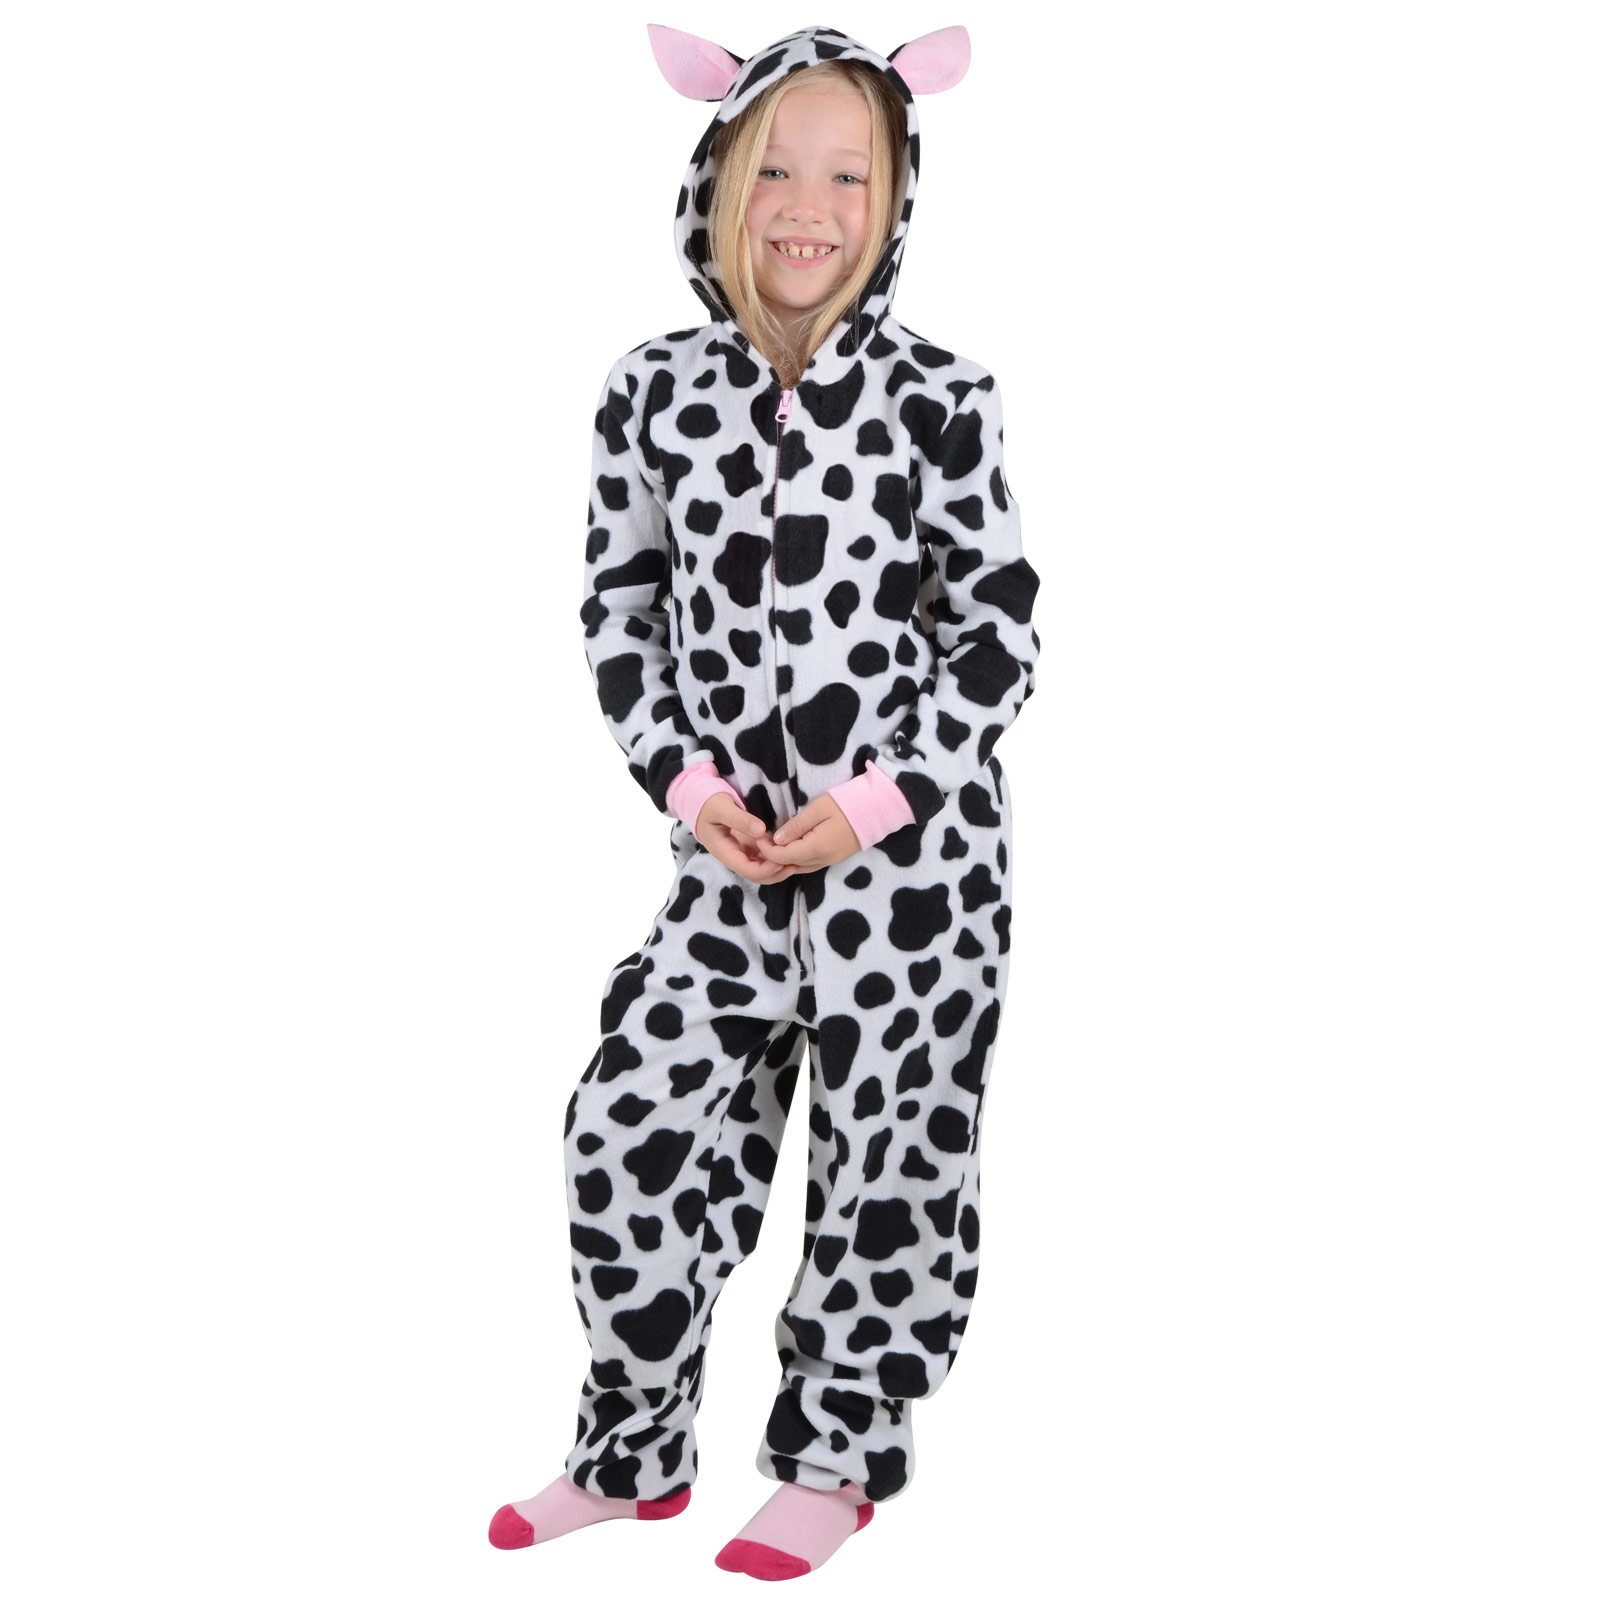 girls hooded fleece all in one piece pyjamas jump sleep suit pj nightwear new ebay. Black Bedroom Furniture Sets. Home Design Ideas